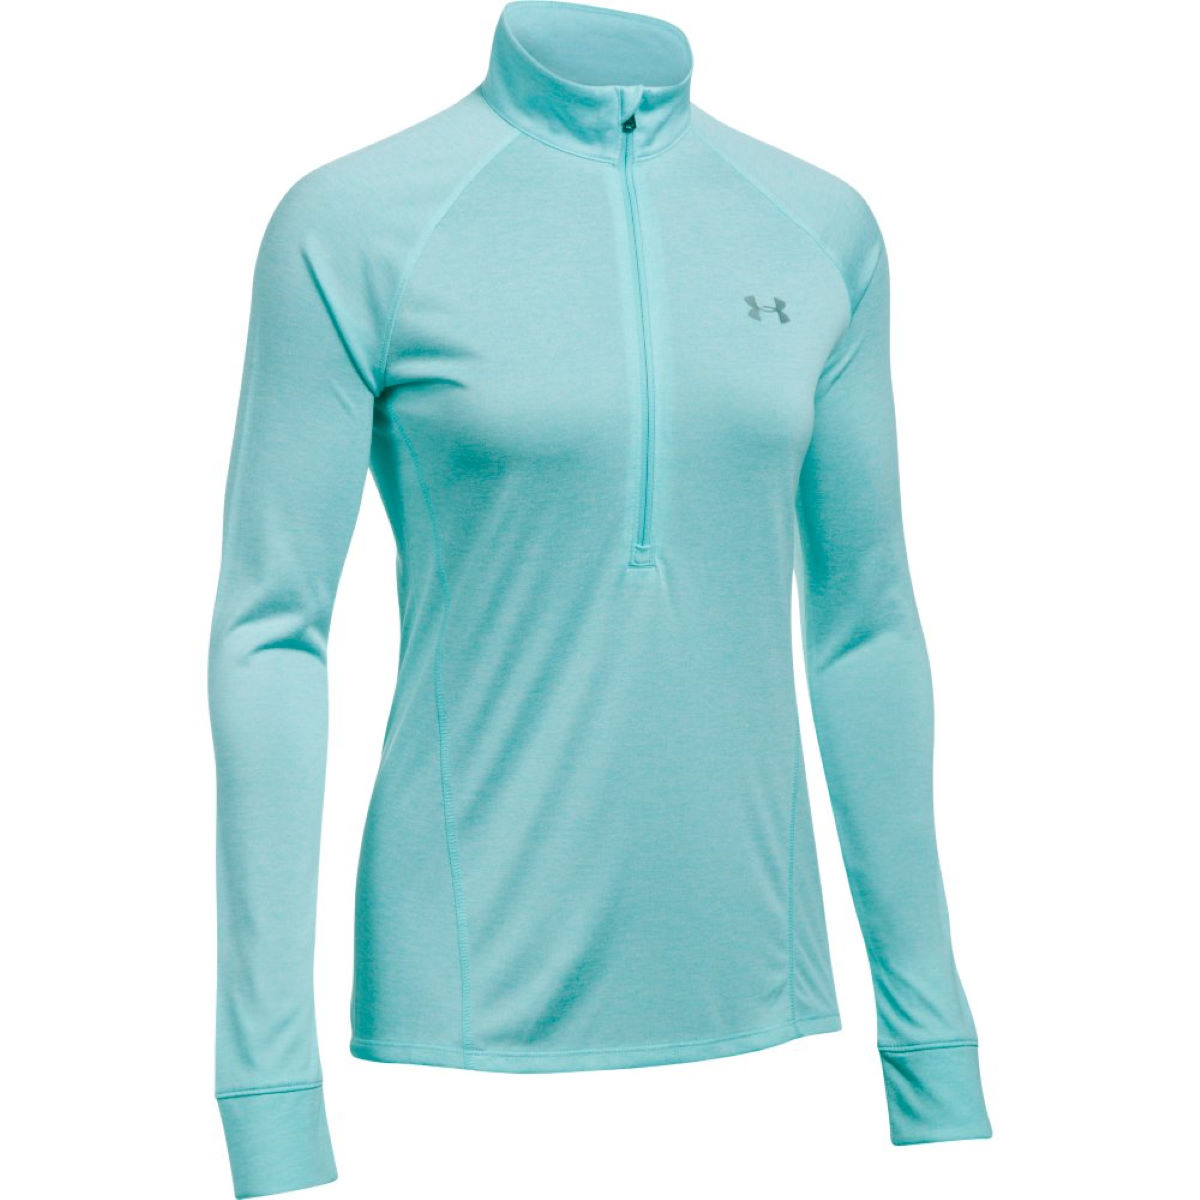 Under Armour Women's Tech 1/2 Zip Twist Top - XL Blue Infinity Hauts de running à manches longues